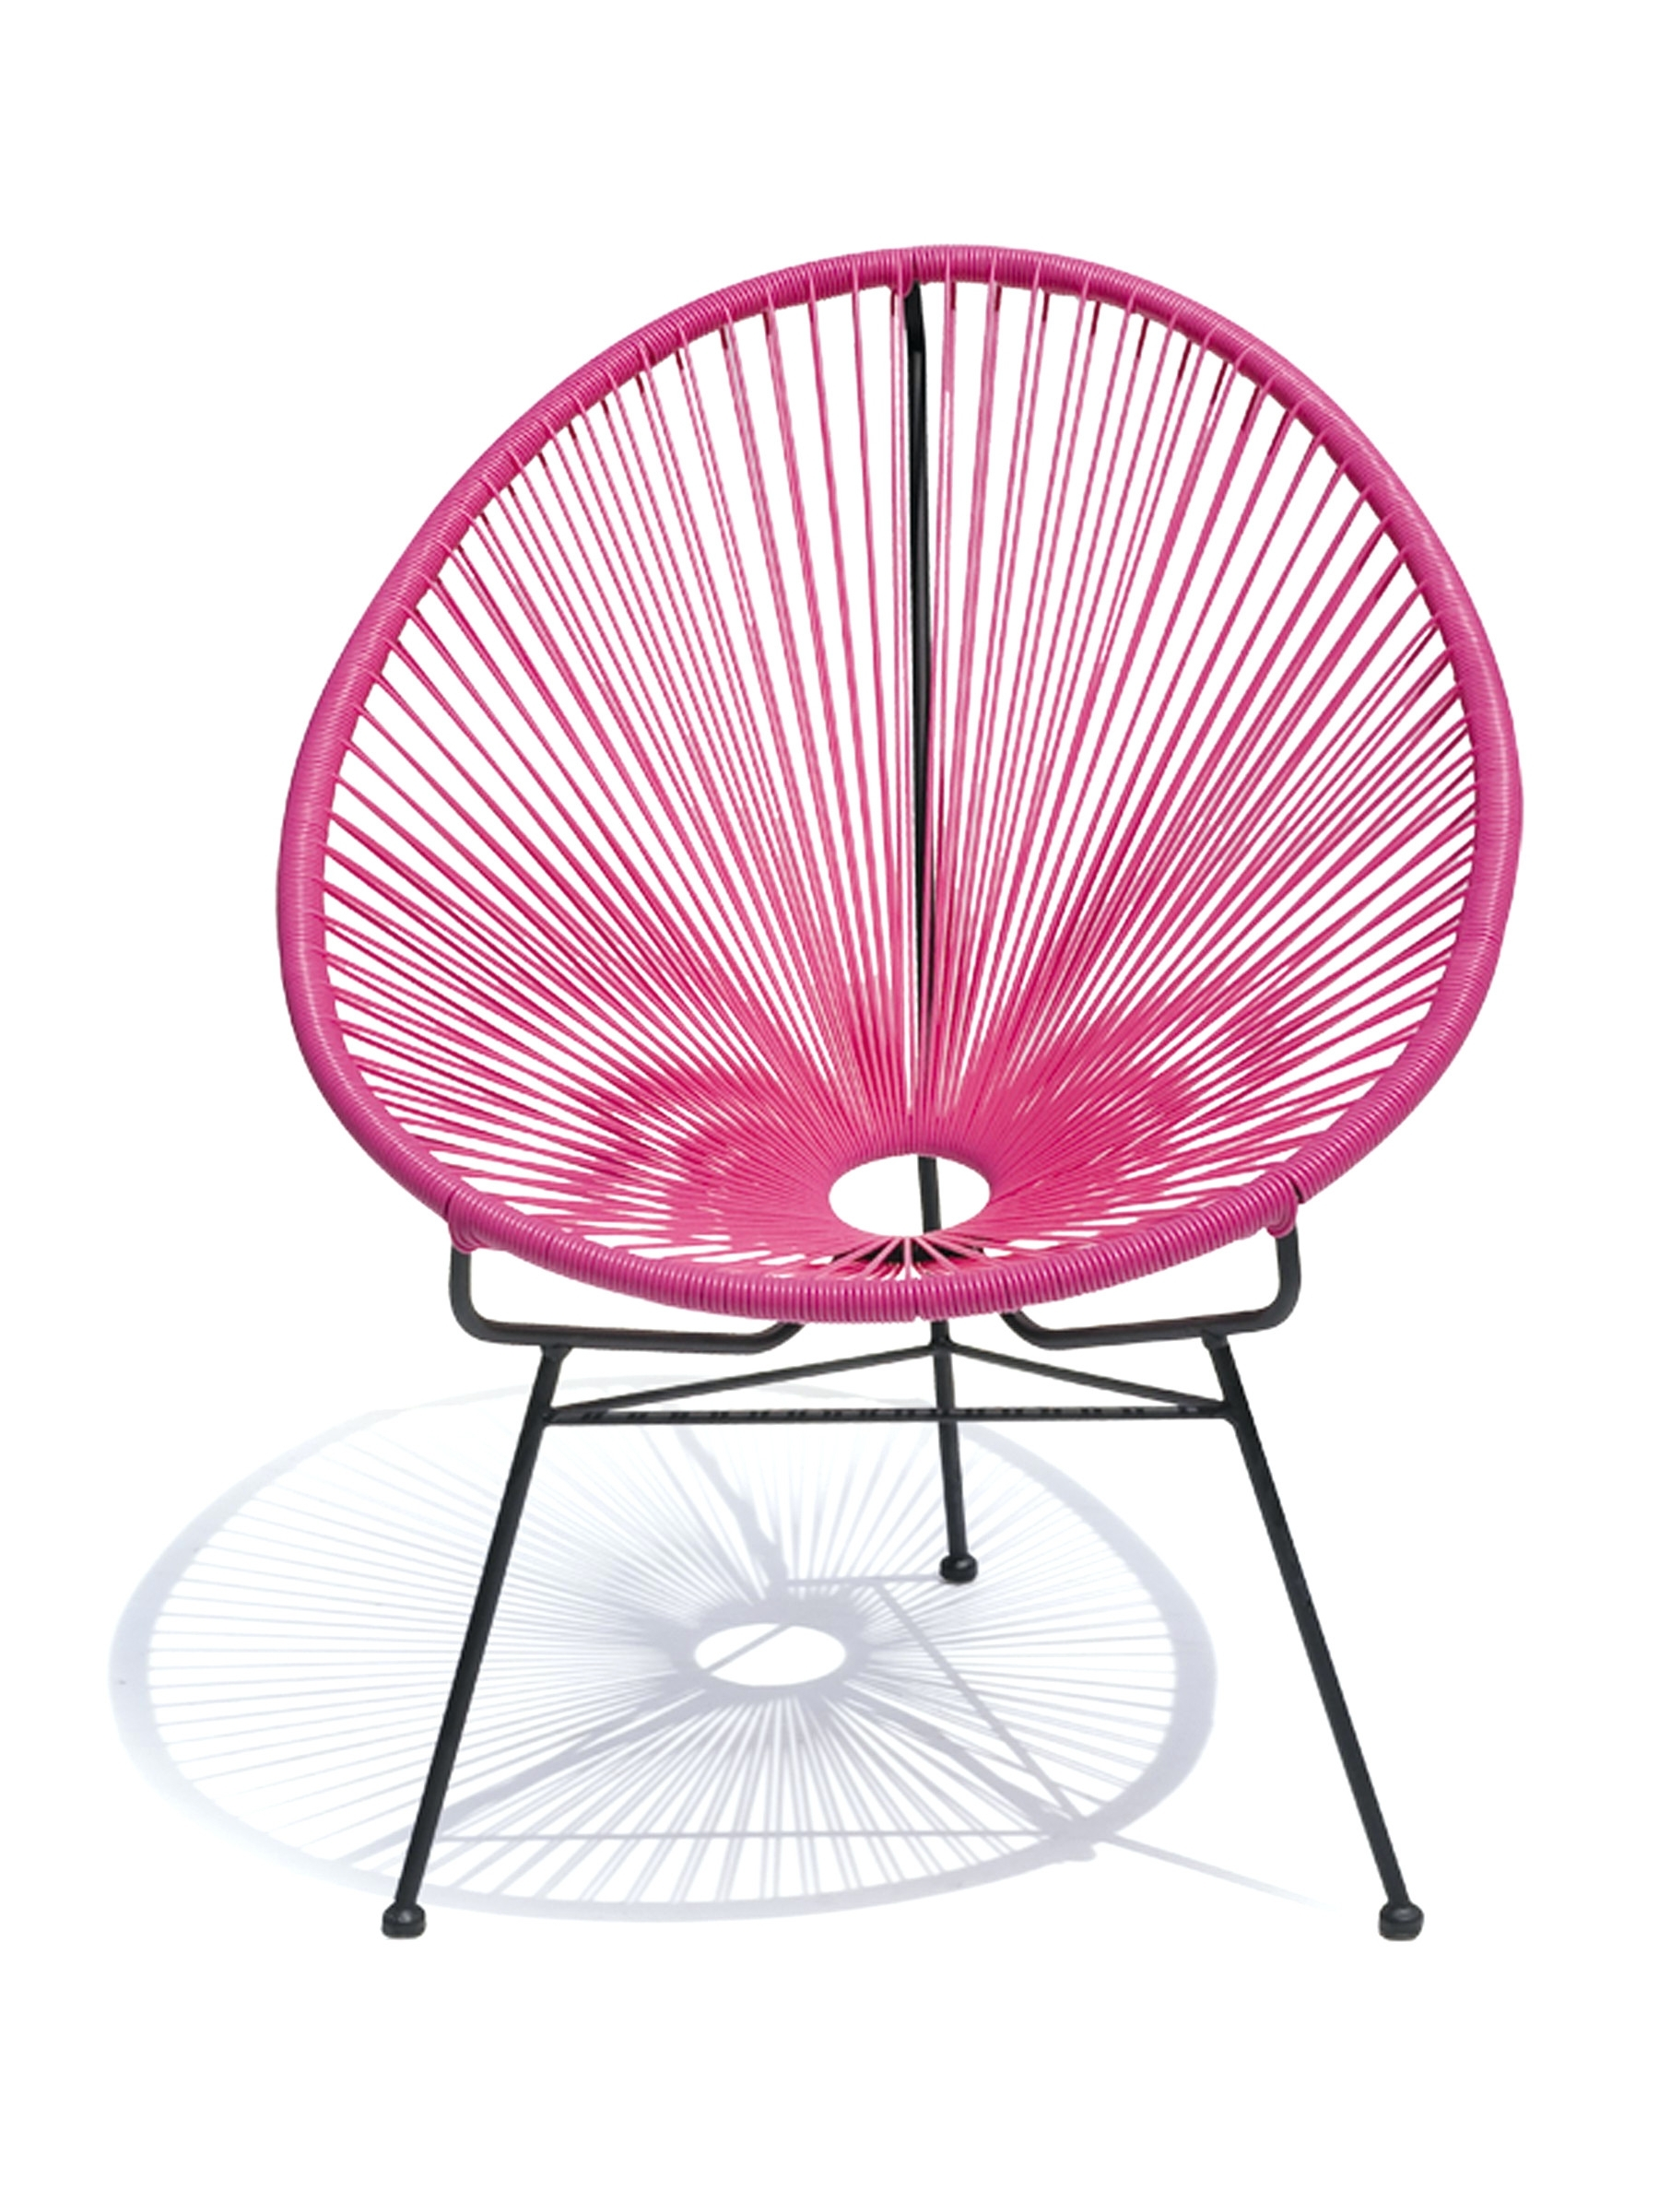 Recent Pink Beach Lounge Chair • Lounge Chairs Ideas Throughout Hot Pink Chaise Lounge Chairs (View 10 of 15)